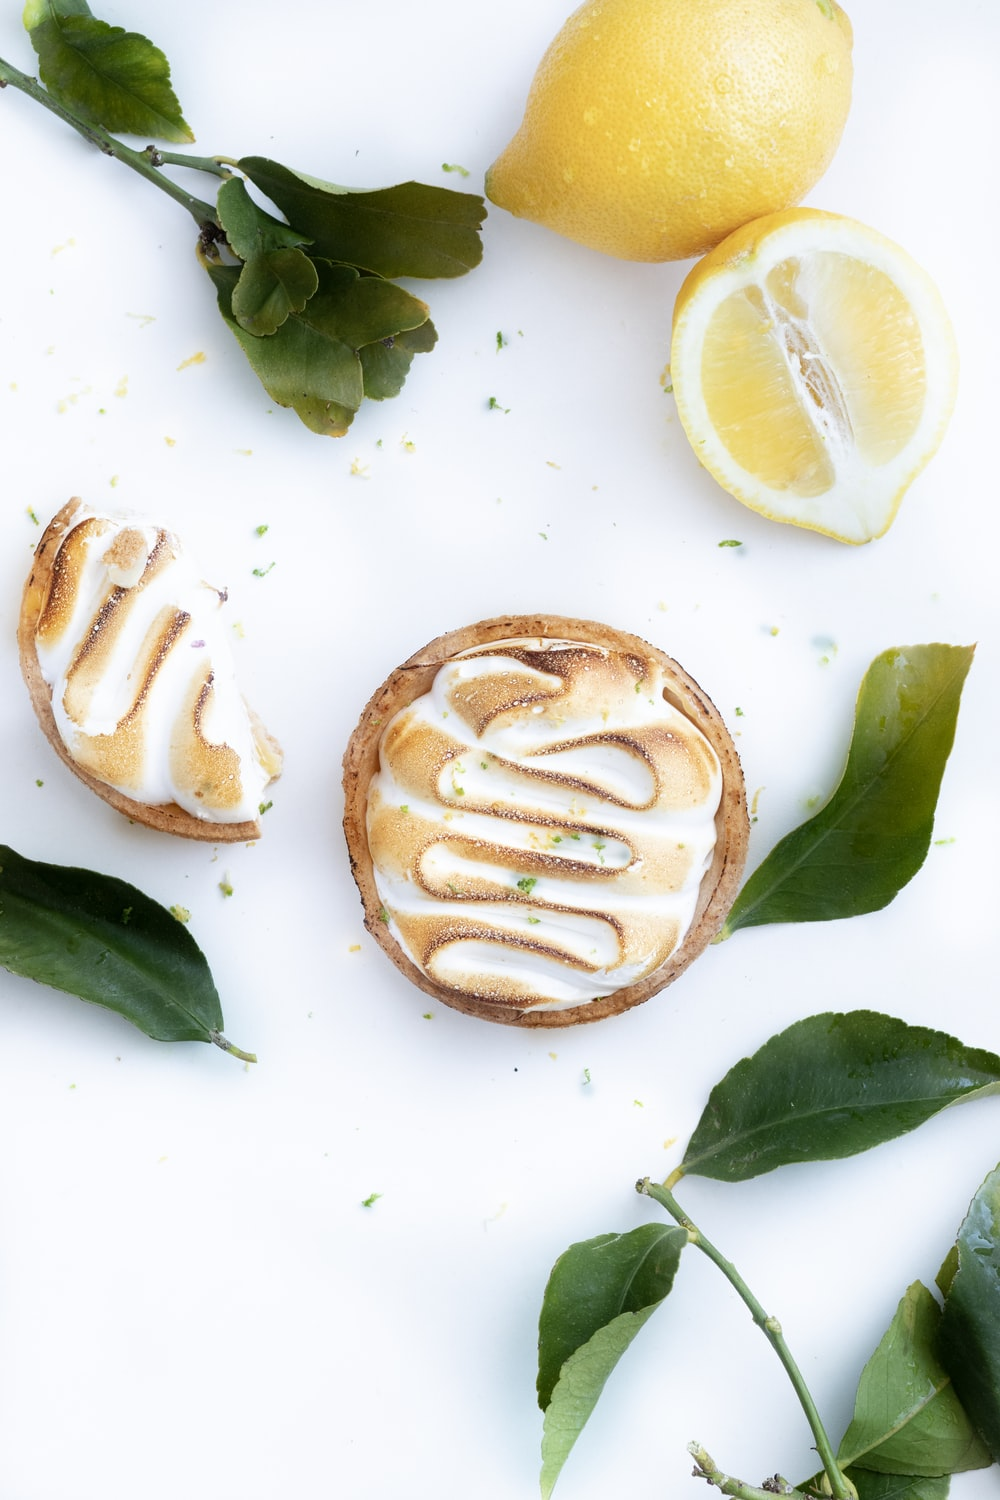 bread with sliced lemon on white table